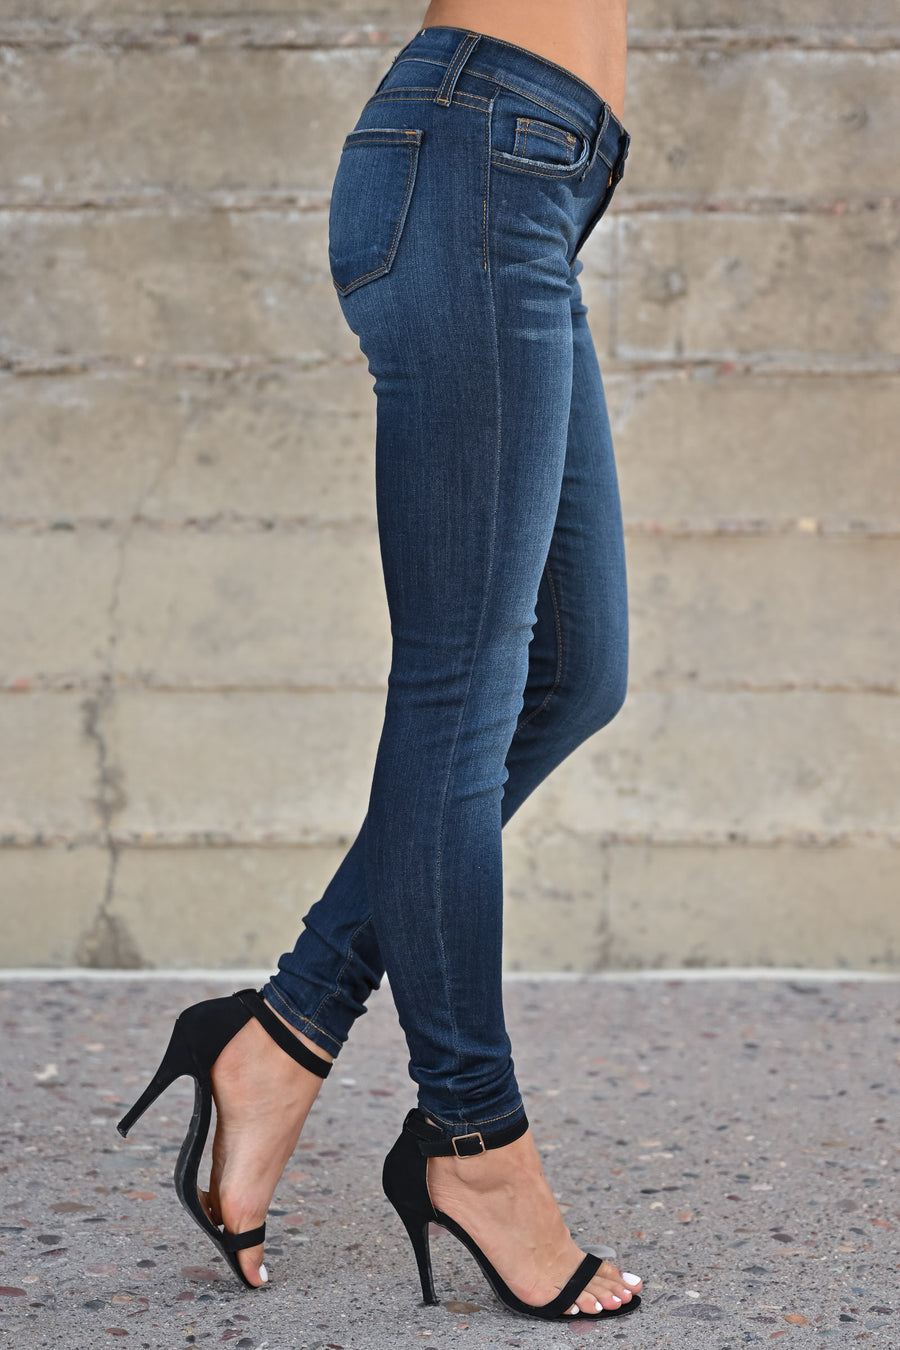 JUDY BLUE Mel Skinny Jeans - Dark Wash womens trendy non-distressed classic stretchy skinny jeans closet candy front